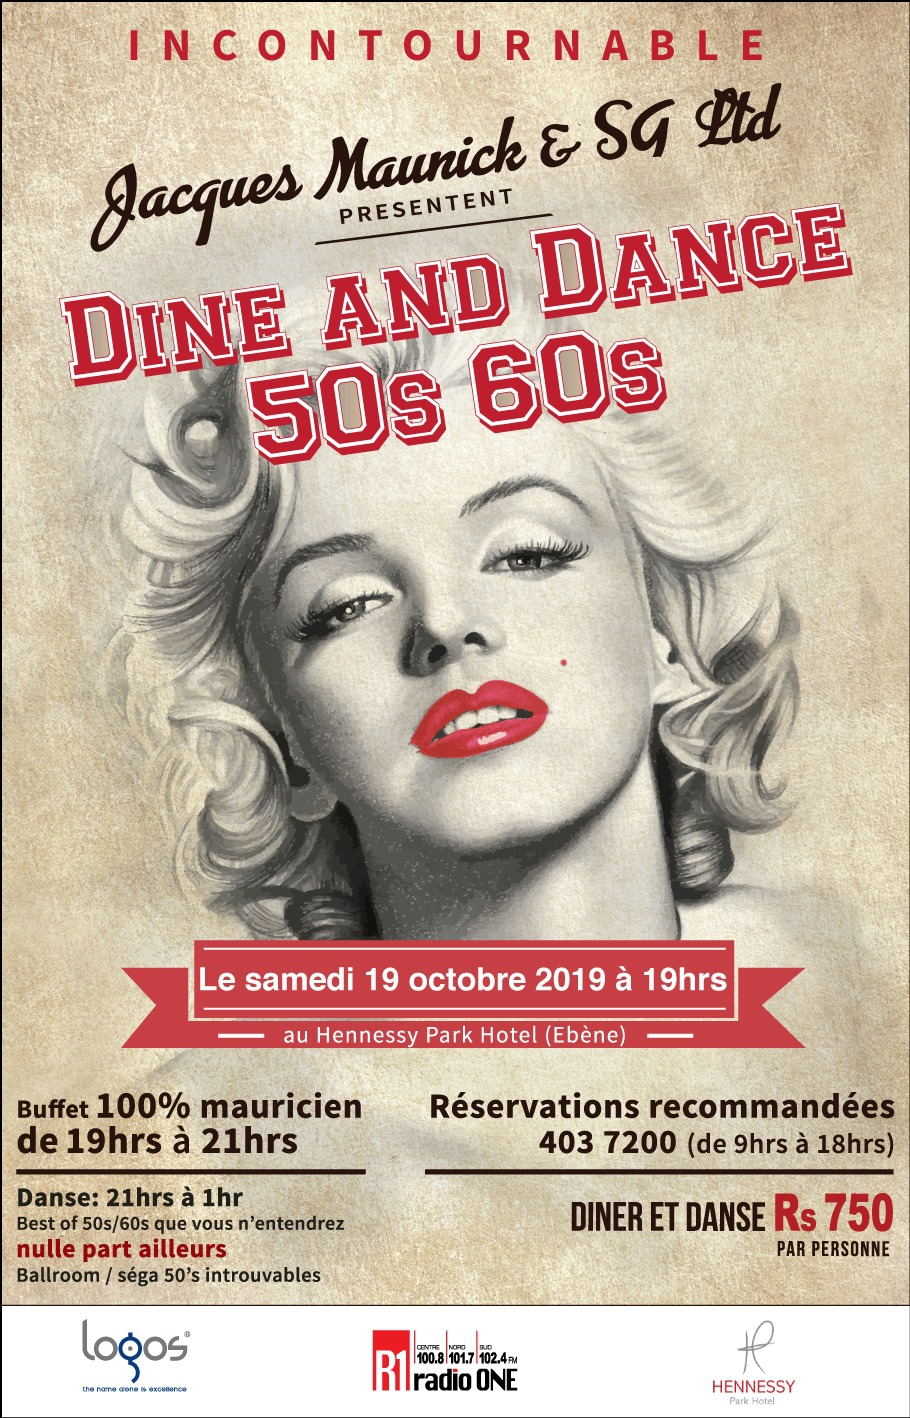 Dine and Dance - 50's 60's at Backstage